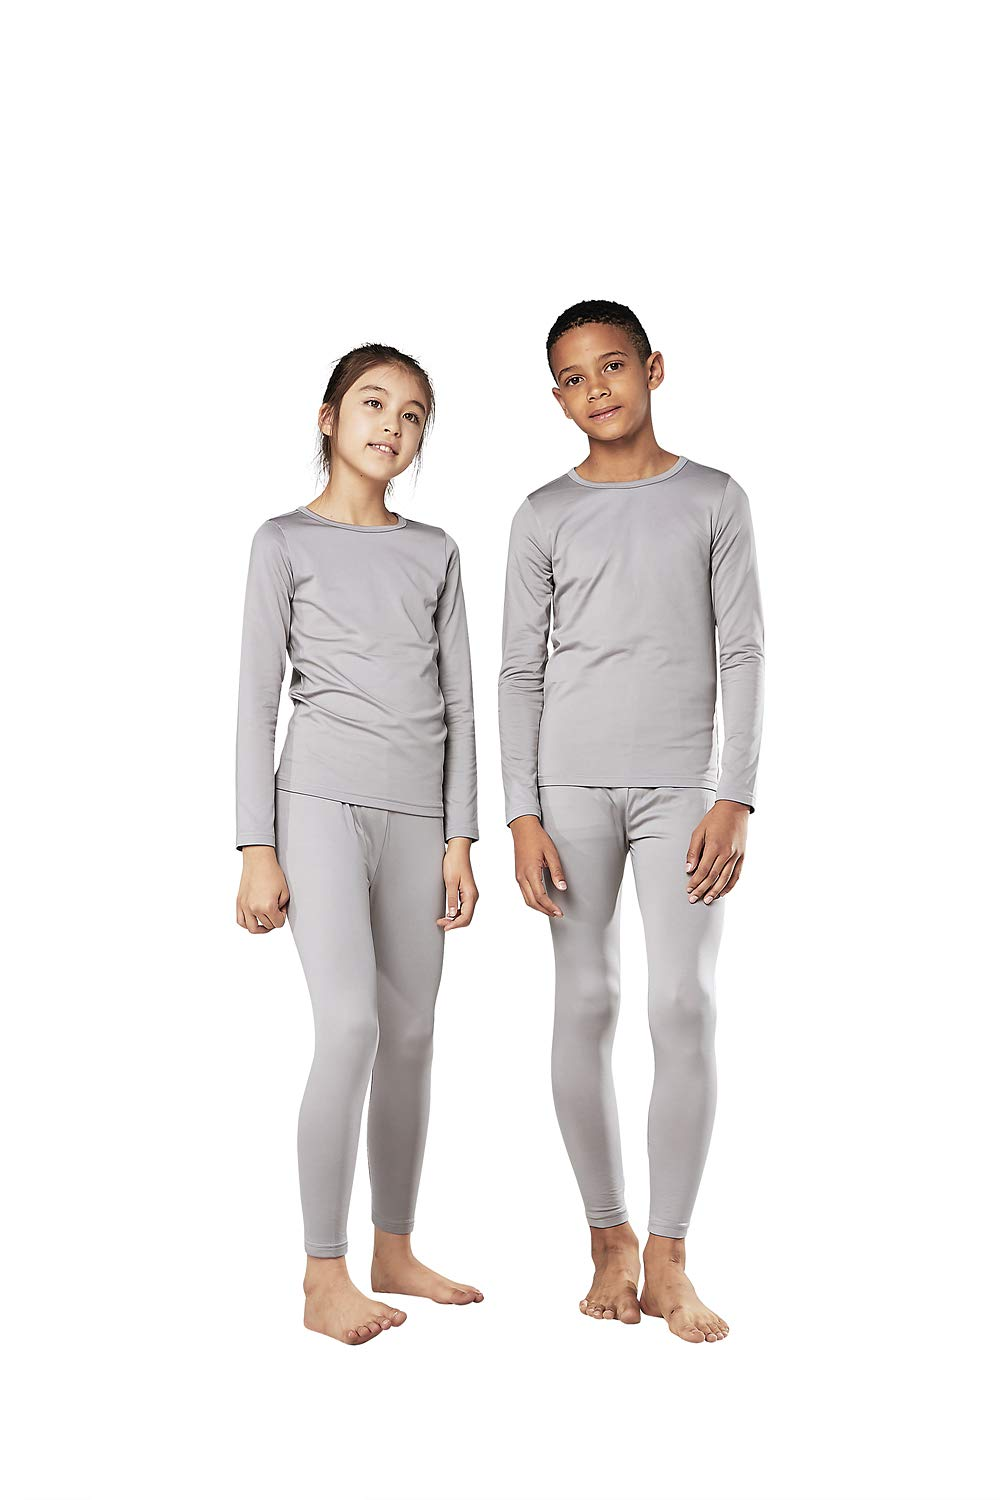 DEVOPS Boys & Girls Thermal Heat-Chain Microfiber Fleece Underwear Baselayer Top & Bottom (Long Johns) Set (Medium, Light Grey) by DEVOPS